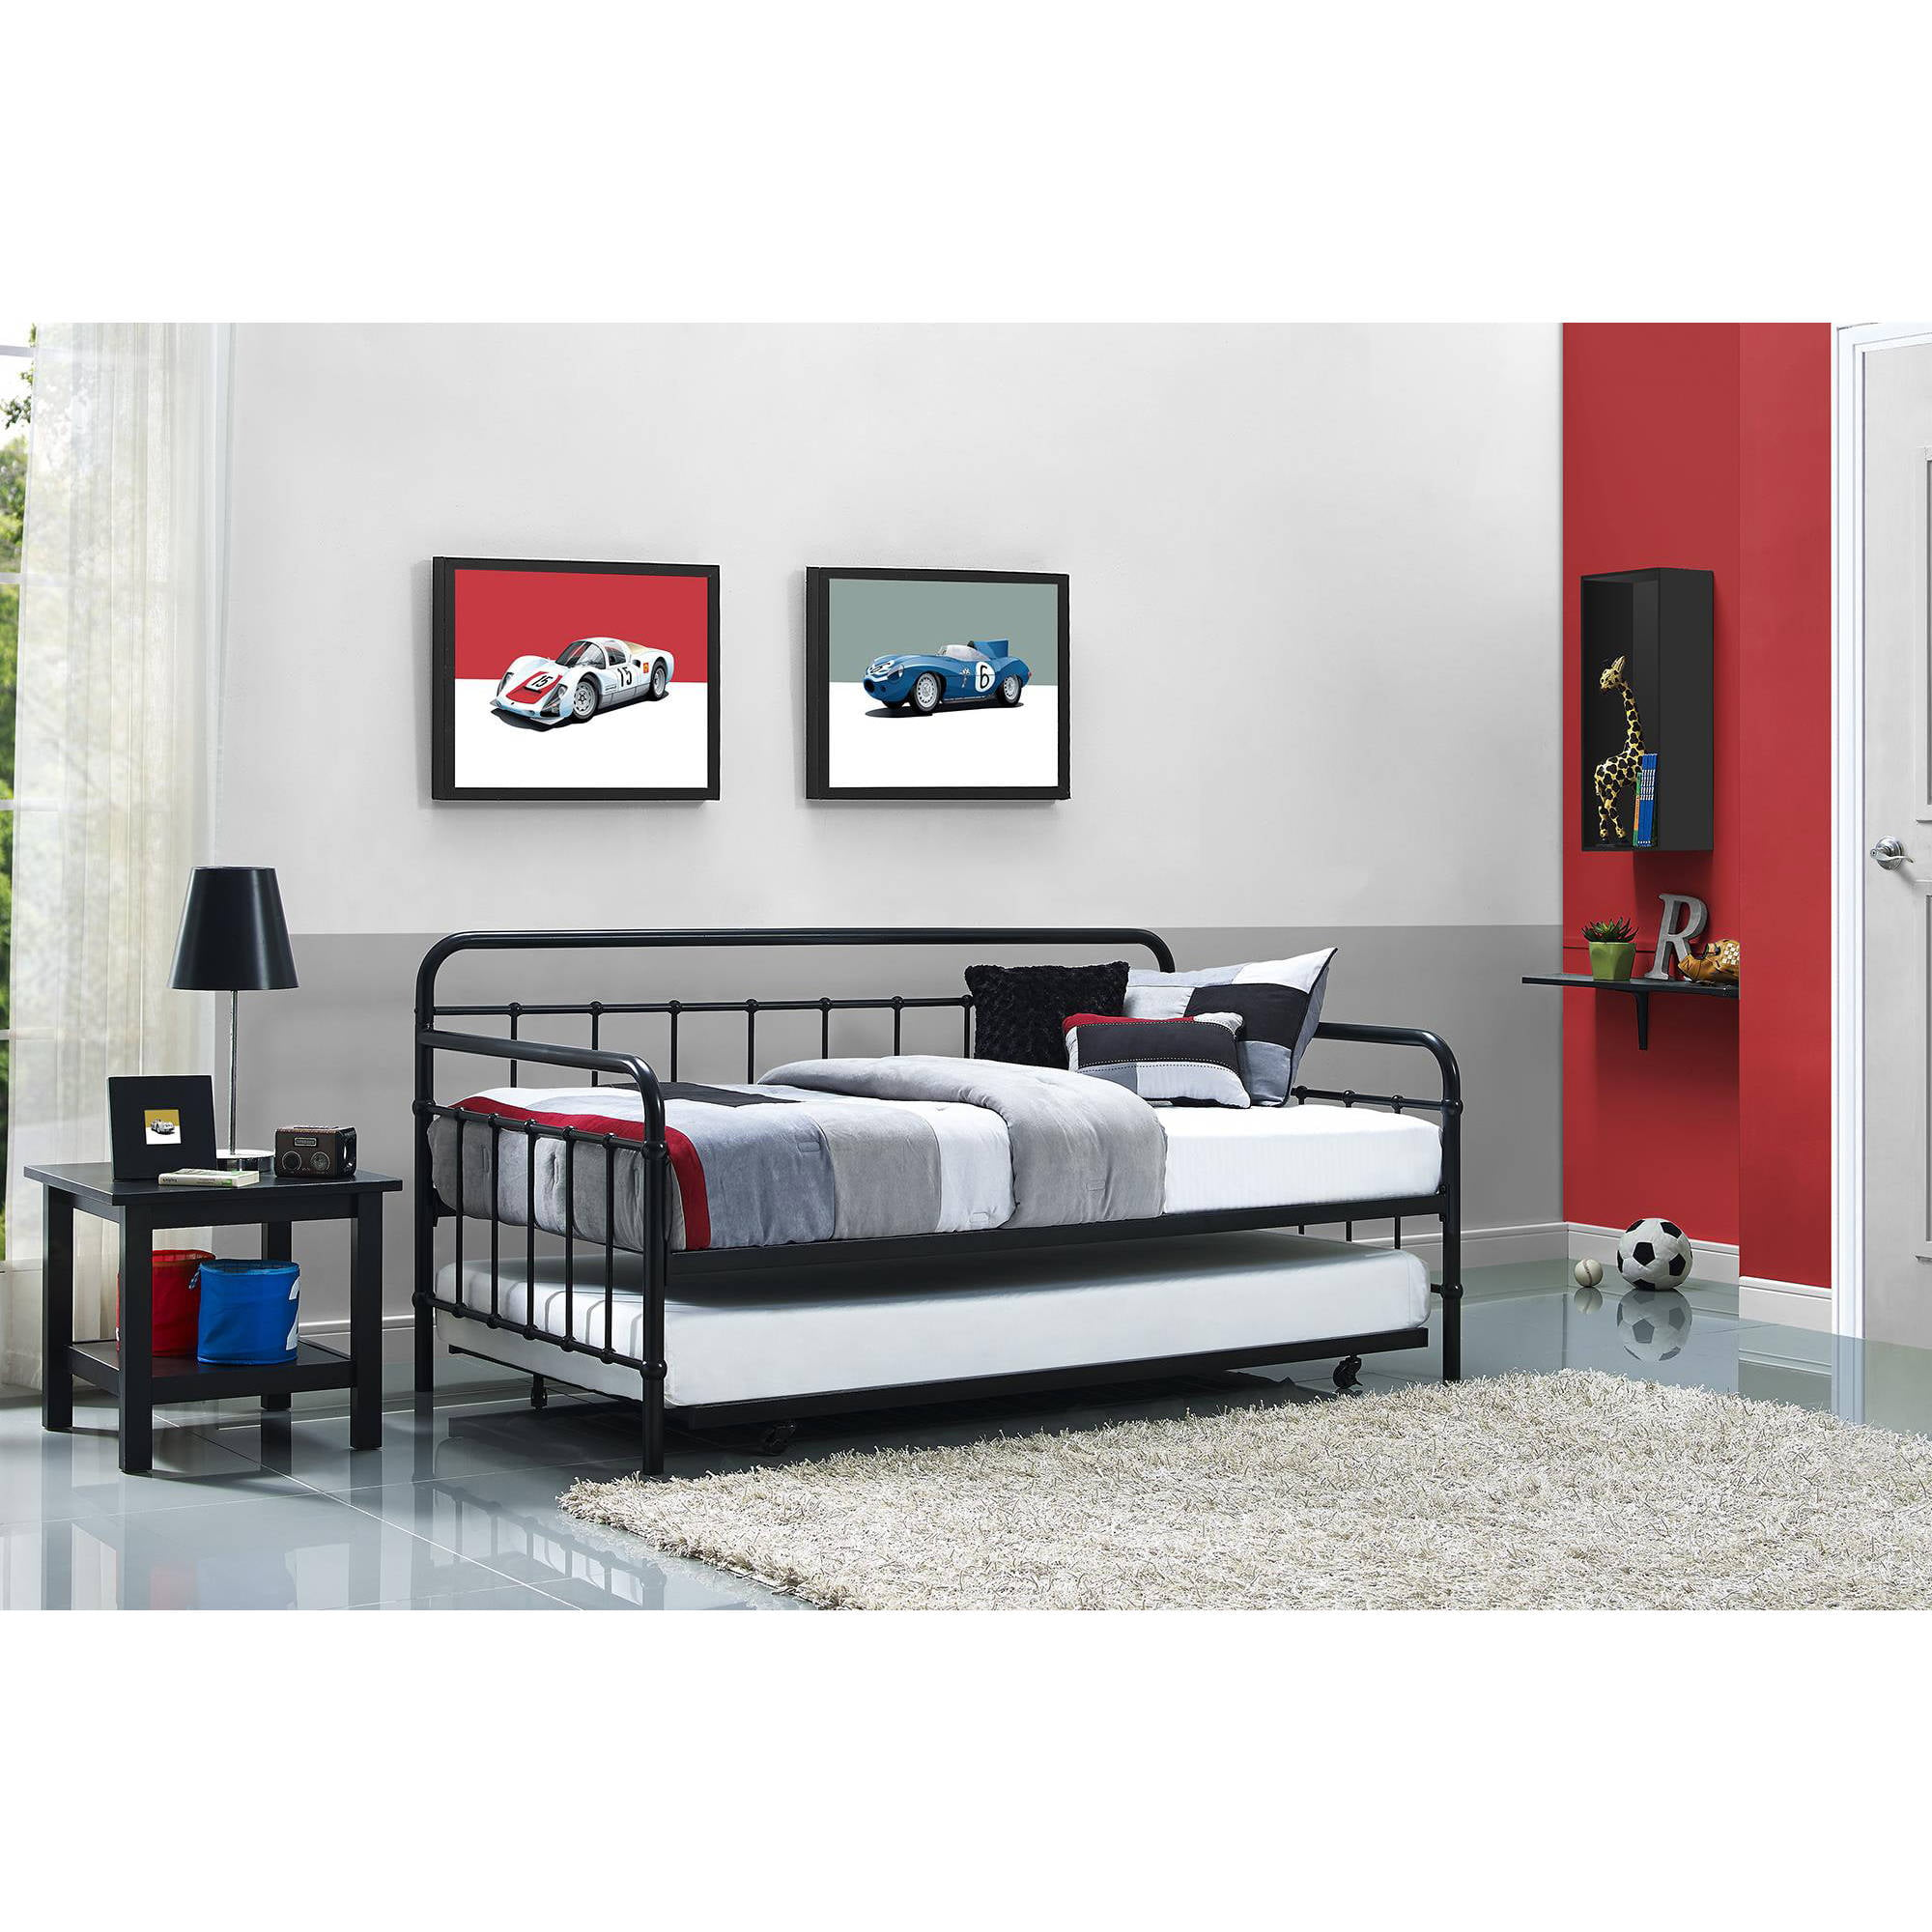 Better Homes and Gardens Kelsey Metal Day Bed & Trundle, Multiple Finishes by Dorel Home Products